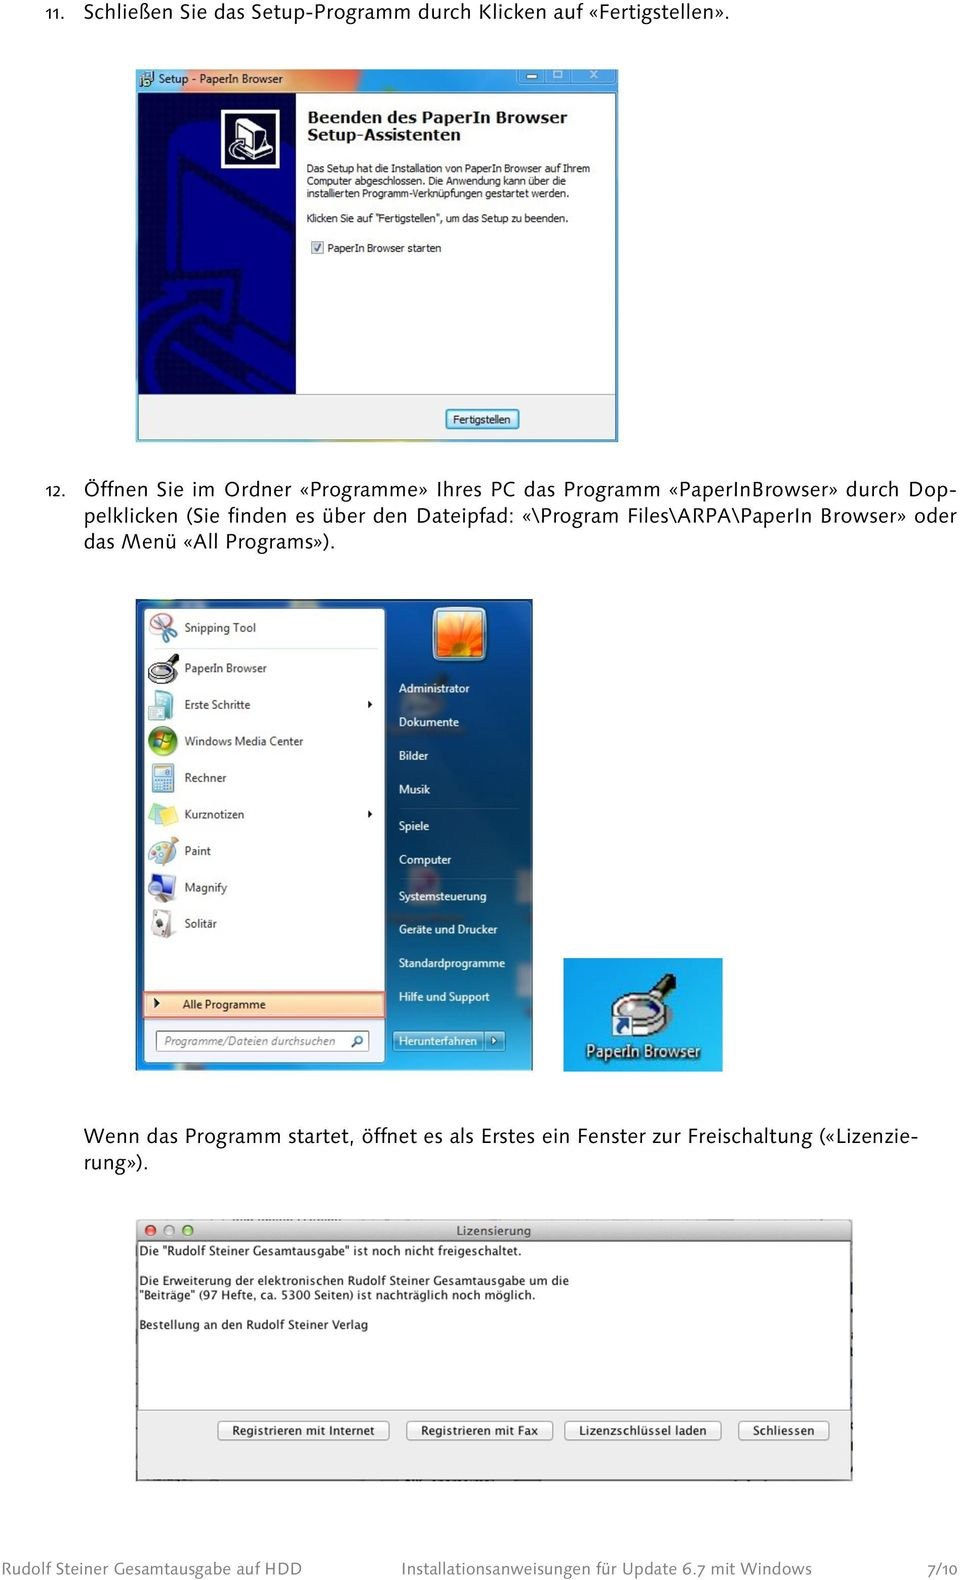 Dateipfad: «\Program Files\ARPA\PaperIn Browser» oder das Menü «All Programs»).